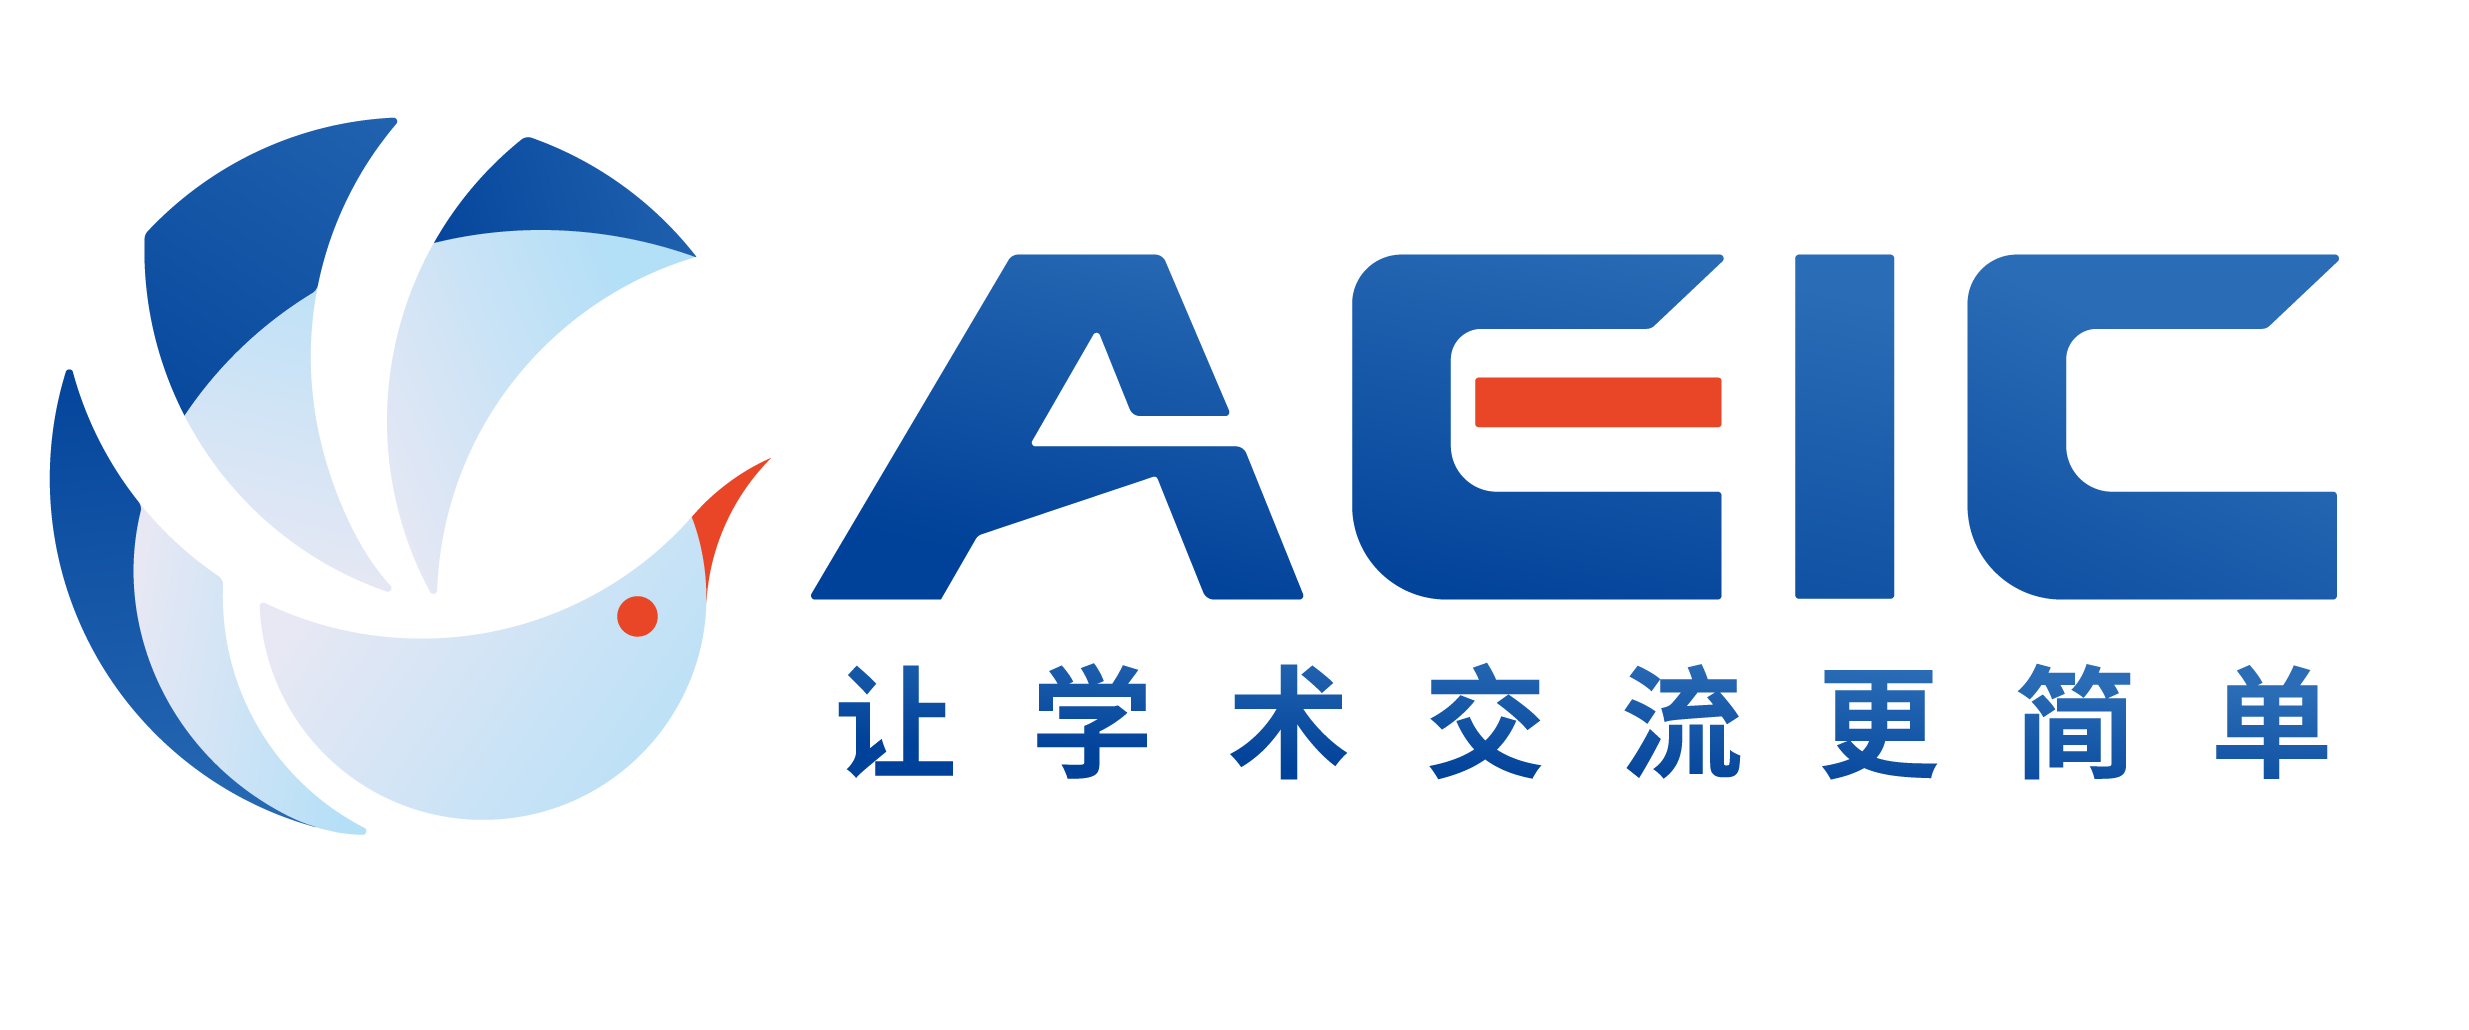 AEIC2.png